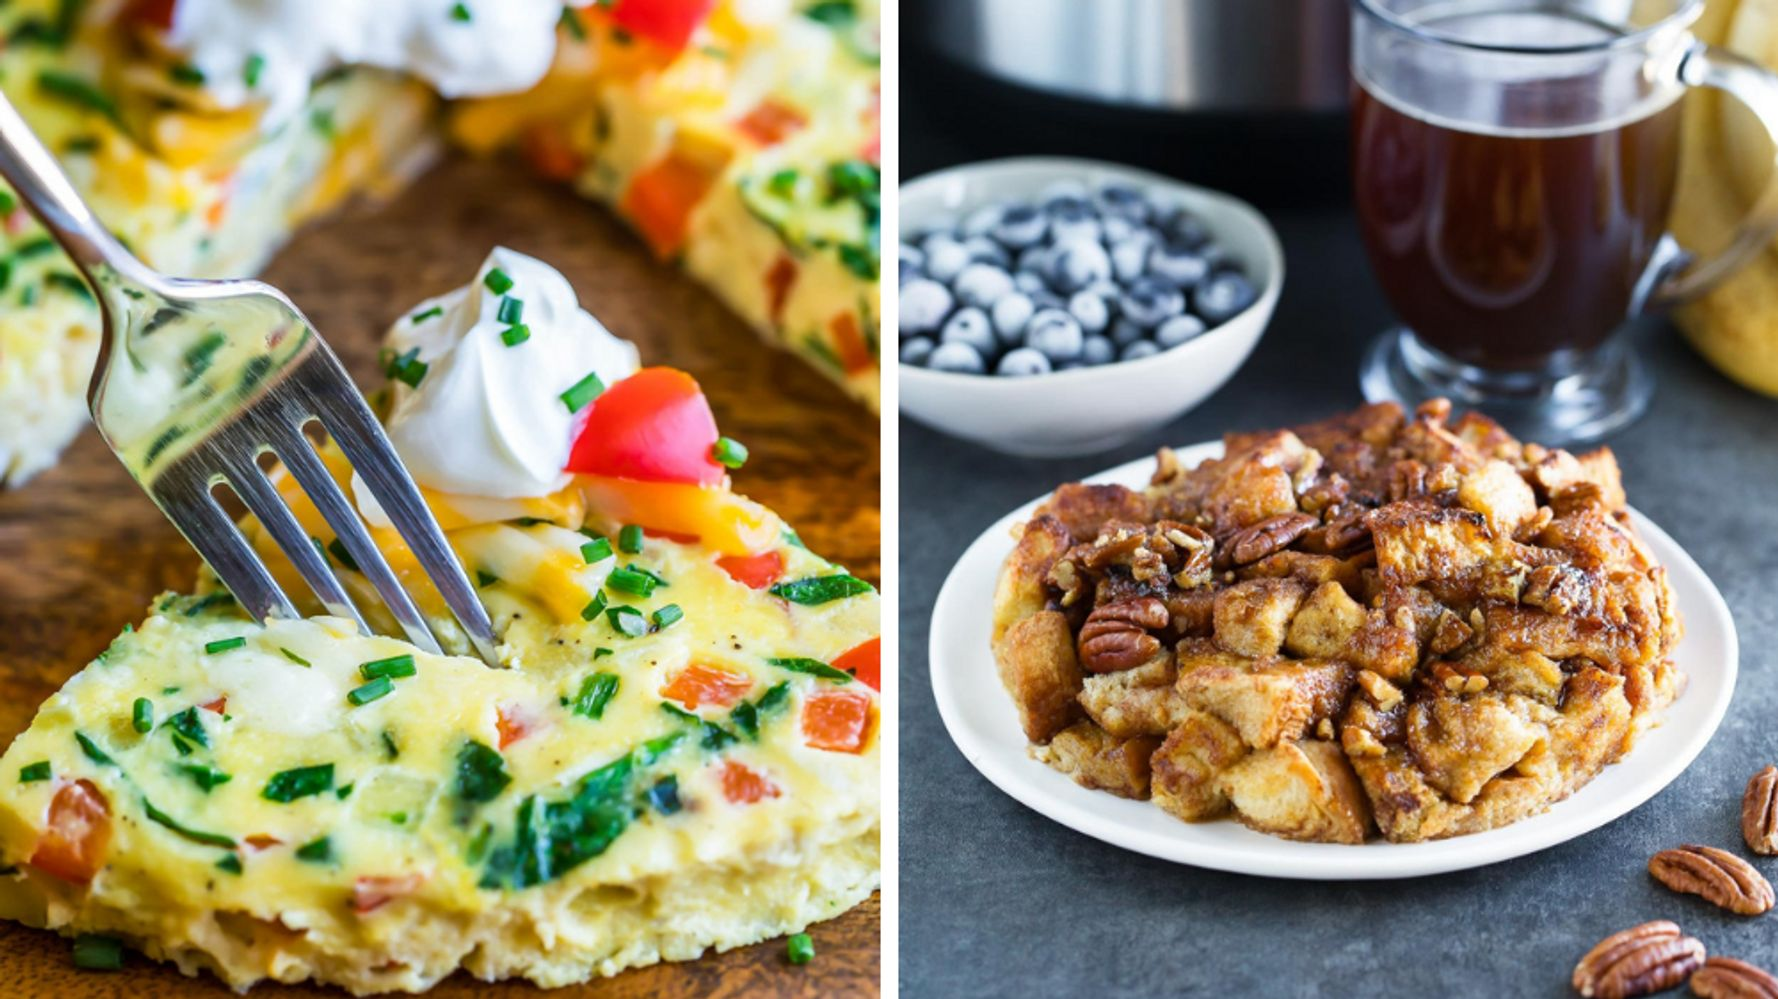 15 Brunch Recipes You Can Make In An Instant Pot After Christmas